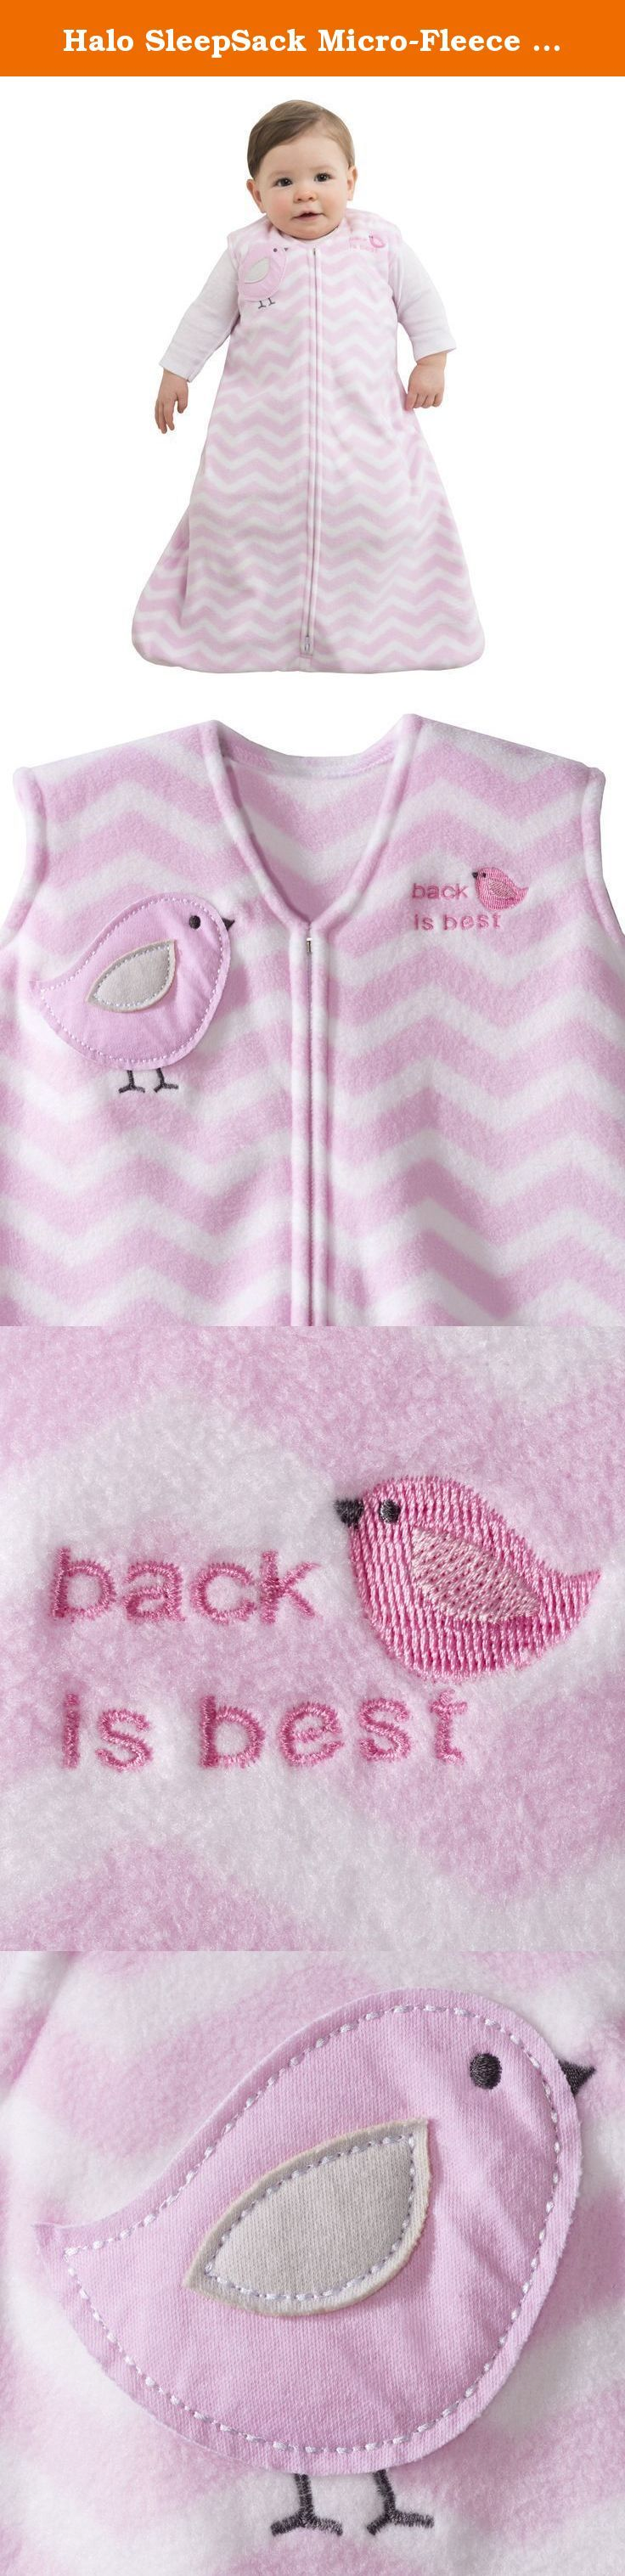 Halo SleepSack Micro-Fleece Wearable Blanket, Pink Zig Zag, X-Large. HALO SleepSack wearable blanket: The Safer Way to Sleep The HALO SleepSack wearable blanket replaces loose blankets in the crib that can cover your baby s face and interfere with breathing. In addition to helping your baby sleep safer, the HALO SleepSack wearable blanket helps your baby sleep better, too. It is a warm cuddly blanket they cannot kick off; ensuring baby sleeps soundly throughout the night. Used in hospital...